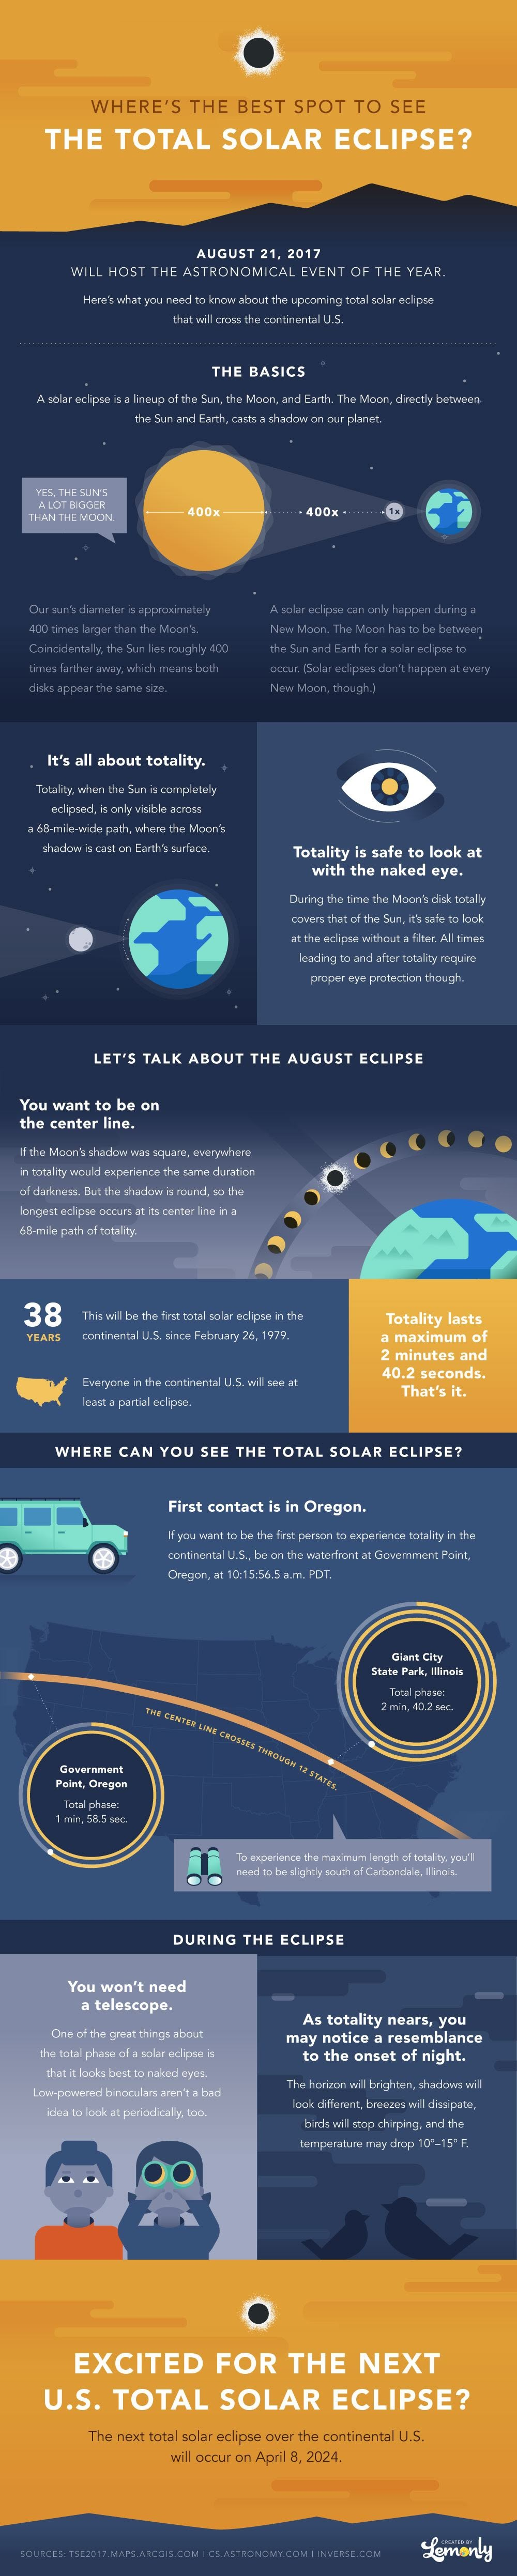 2017 Total Solar Eclipse #infographic